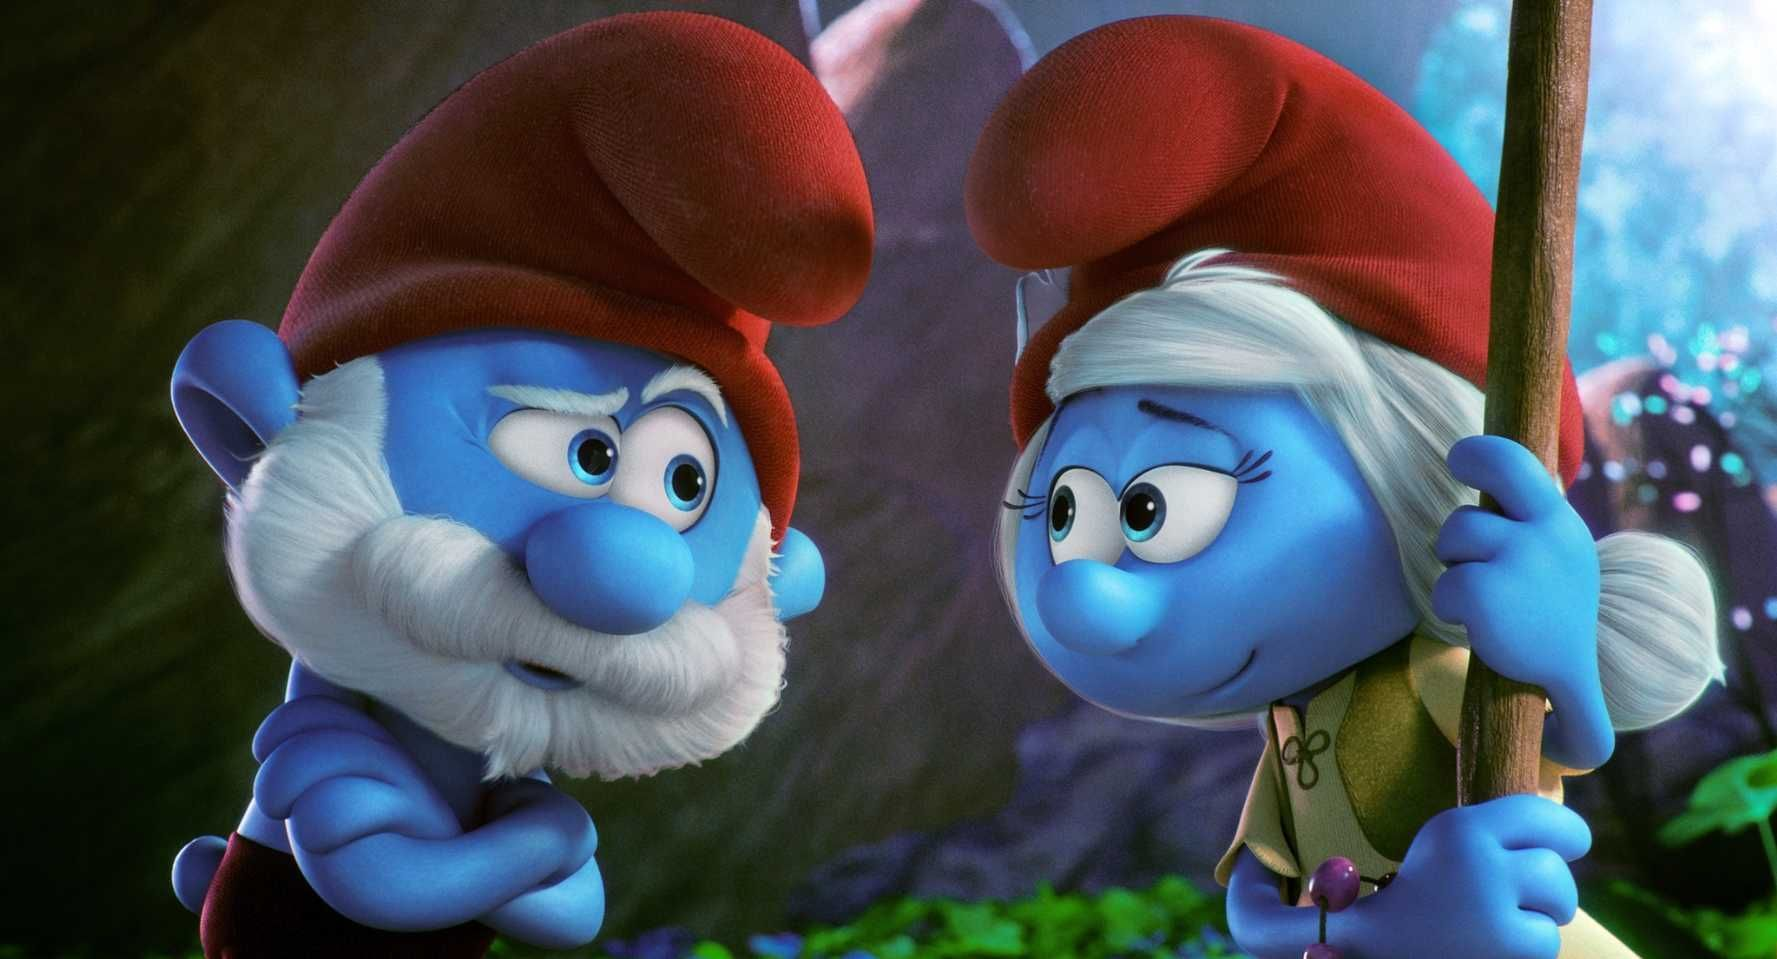 smurfs the lost village (2017) torrent download hd. here you can